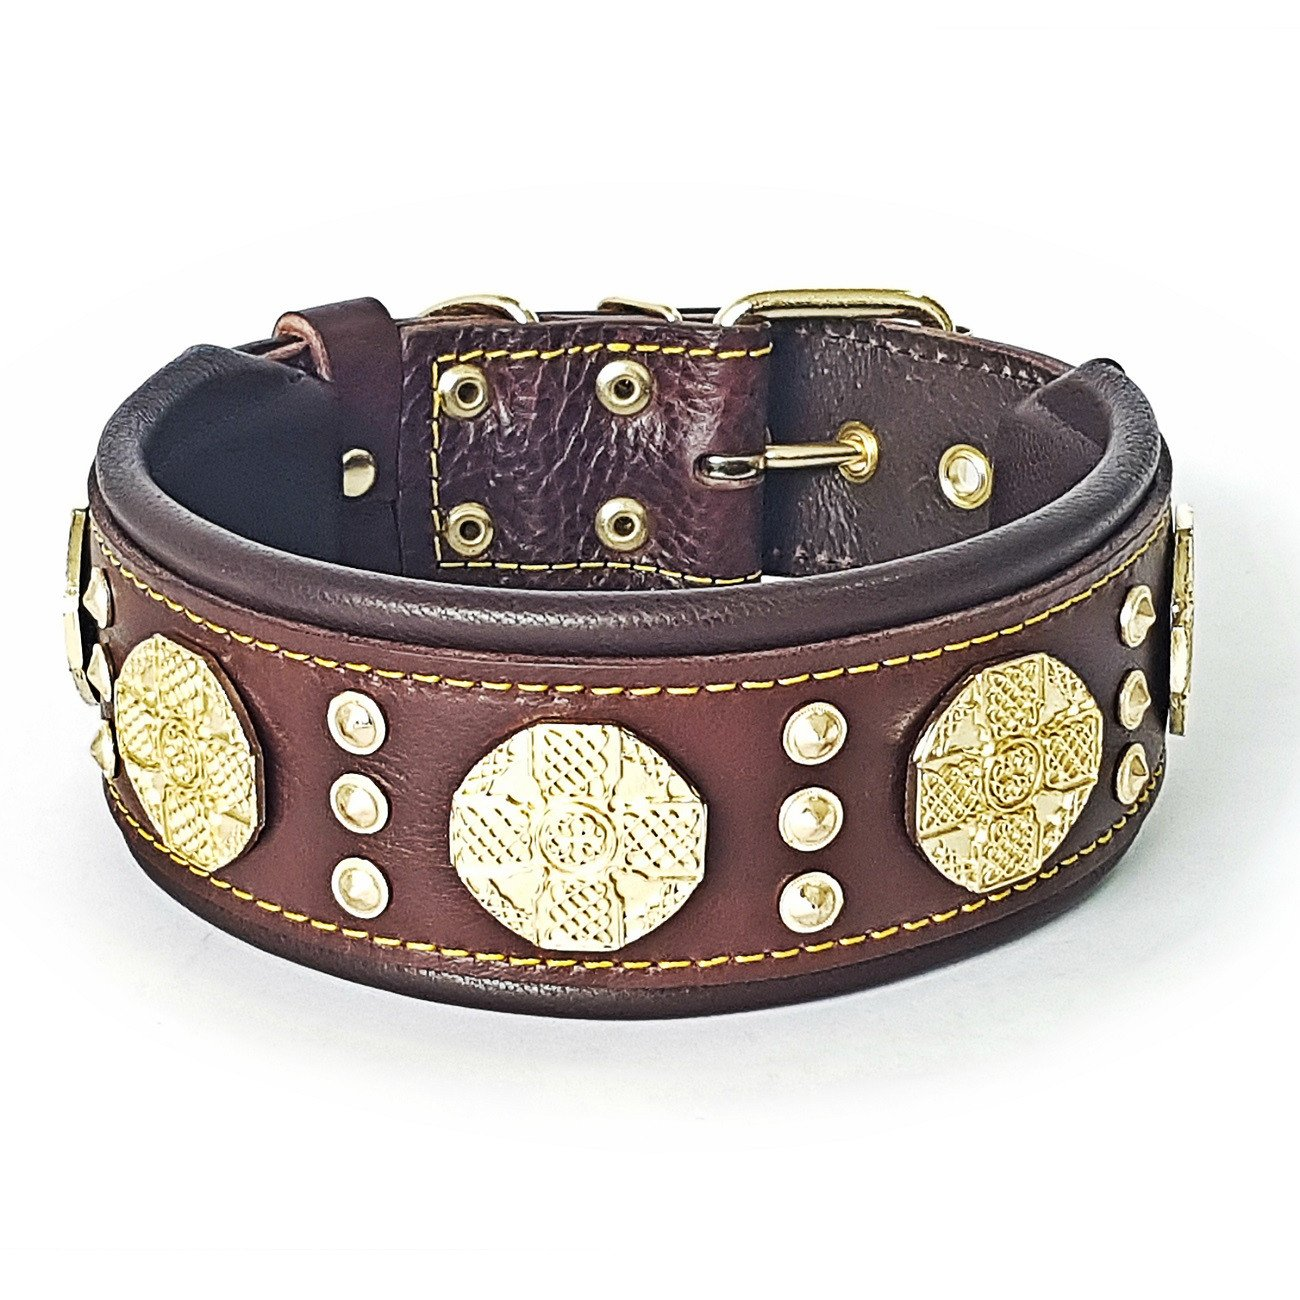 Bestia Maximus genuine leather dog collar, Large breeds, cane corso, Rottweiler, Boxer, Bullmastiff, Dogo, Quality dog collar, 100% leather, studded, M-XXL size, 2.5 inch wide. padded. Made in Europe!